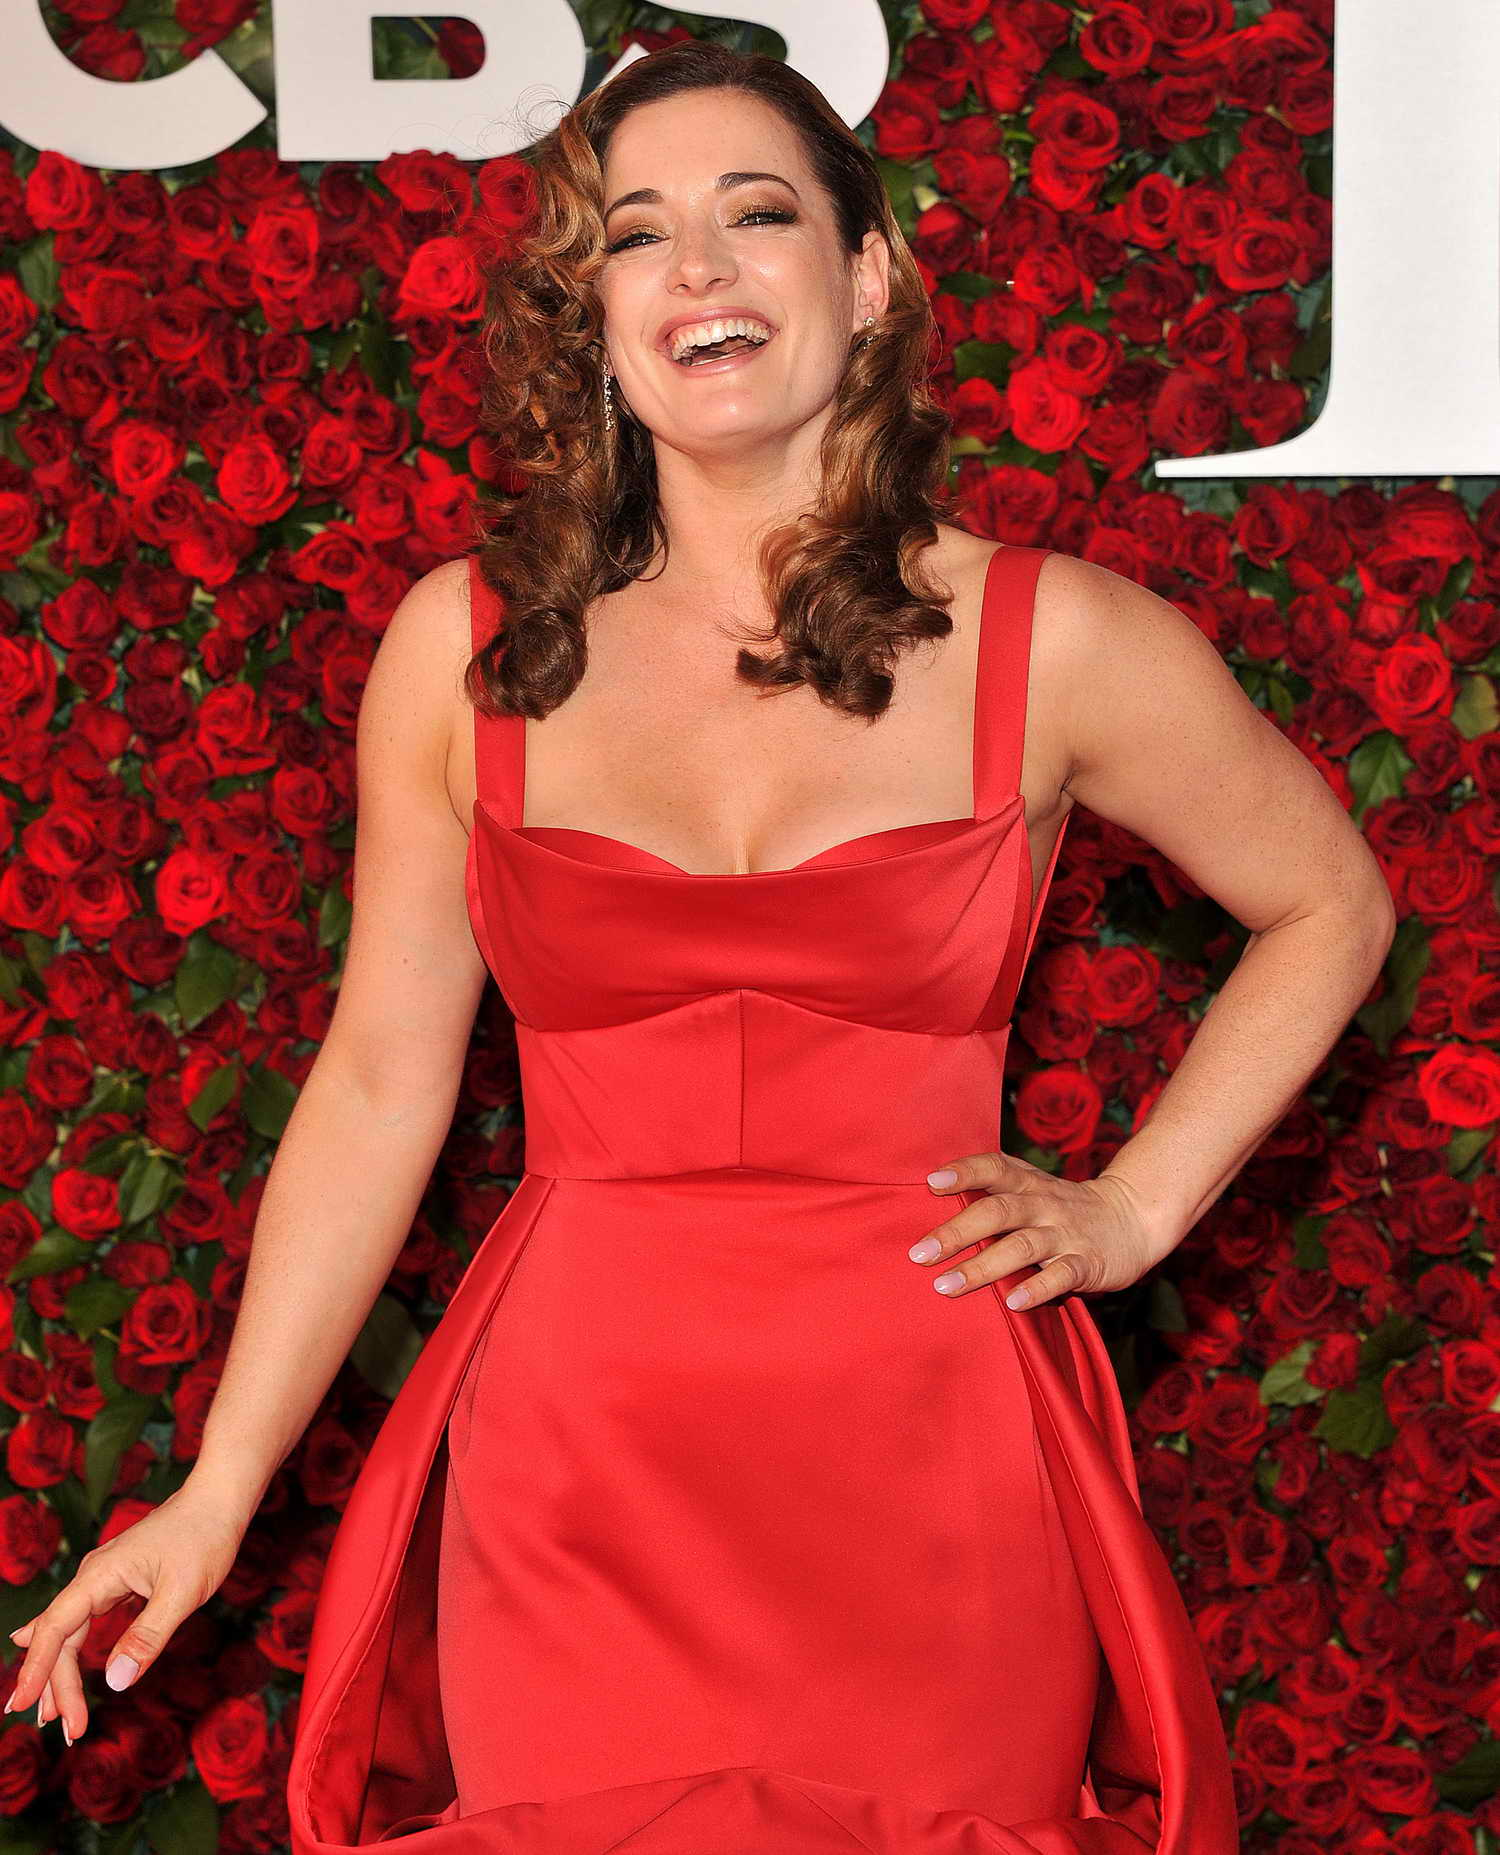 laura michelle kelly movieslaura michelle kelly king and i, laura michelle kelly sweeney todd, laura michelle kelly height, laura michelle kelly instagram, laura michelle kelly twitter, laura michelle kelly age, laura michelle kelly imdb, laura michelle kelly all that matters, laura michelle kelly beauty and the beast, laura michelle kelly my fair lady, laura michelle kelly youtube, laura michelle kelly lord of the rings, laura michelle kelly interview, laura michelle kelly ibdb, laura michelle kelly movies, laura michelle kelly getting to know you, laura michelle kelly mamma mia, laura michelle kelly facebook, laura michelle kelly galadriel, laura michelle kelly songs